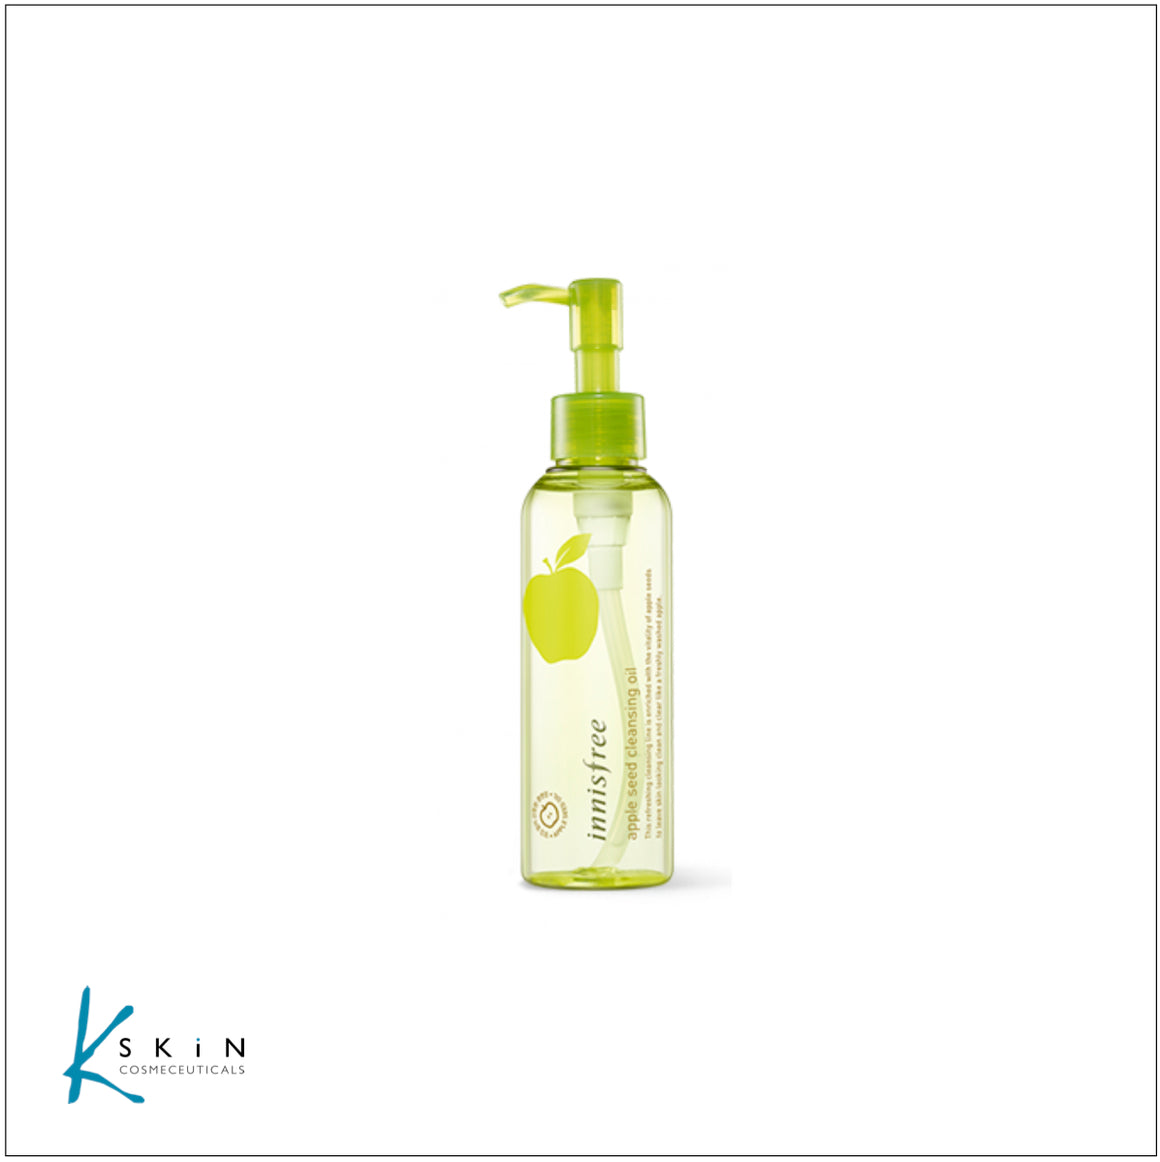 Inisfree Apple Seed Cleansing Oil 150ml